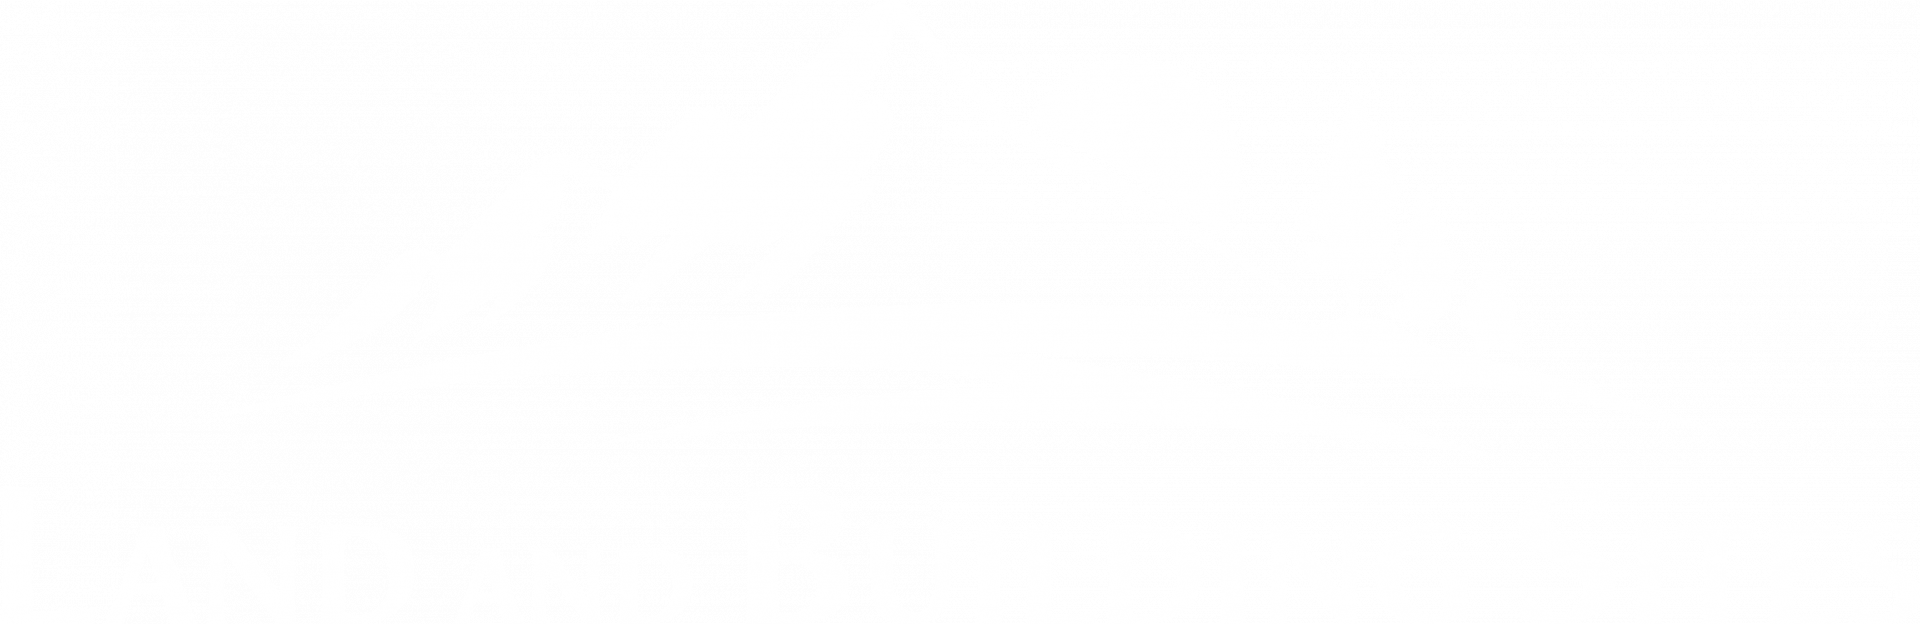 Land and Building Sites logo